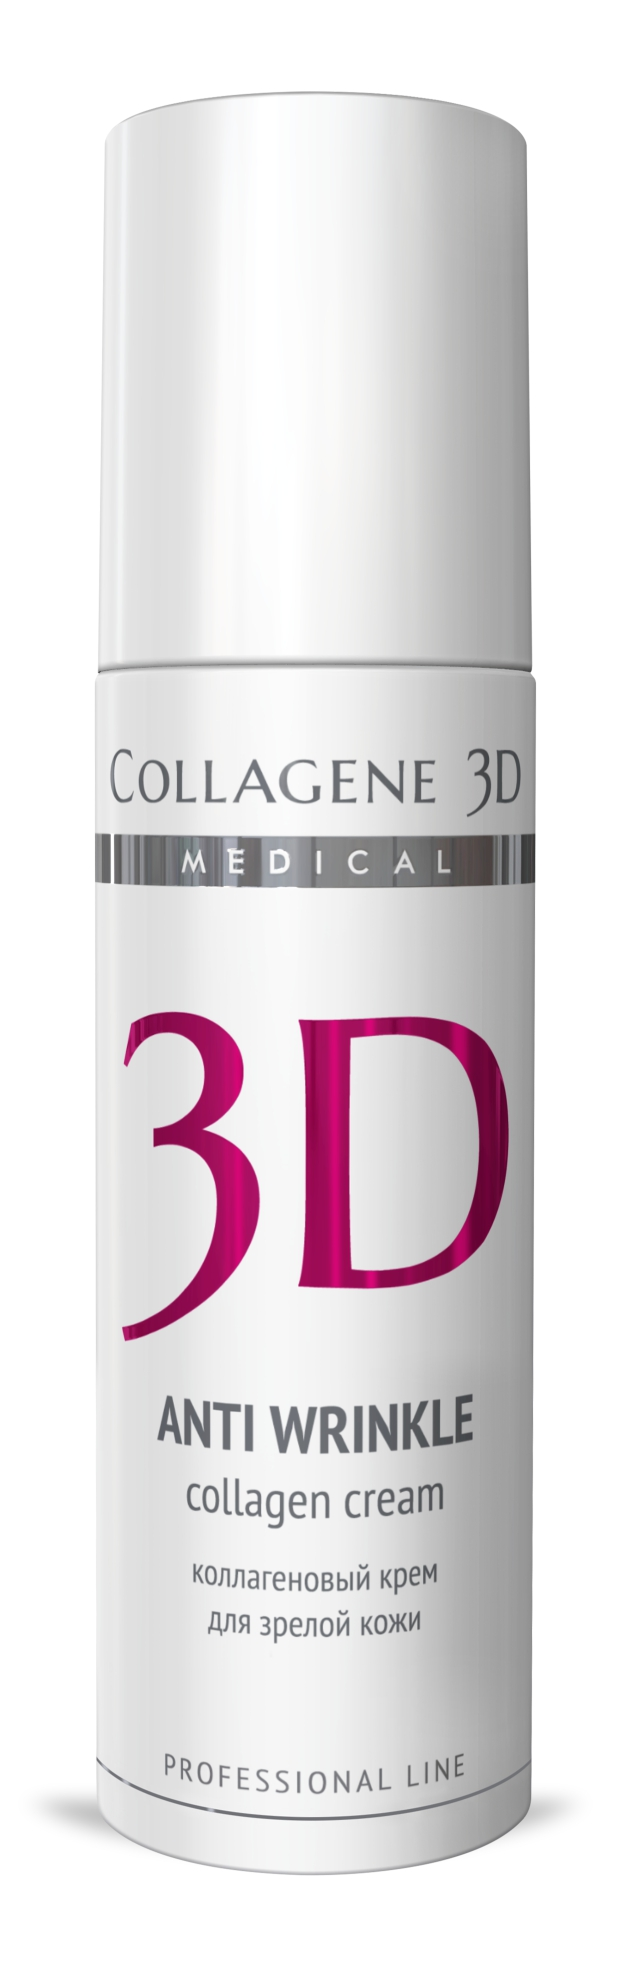 MEDICAL COLLAGENE 3D Крем с коллагеном и плацентолью для лица Anti Wrinkle 150мл проф.